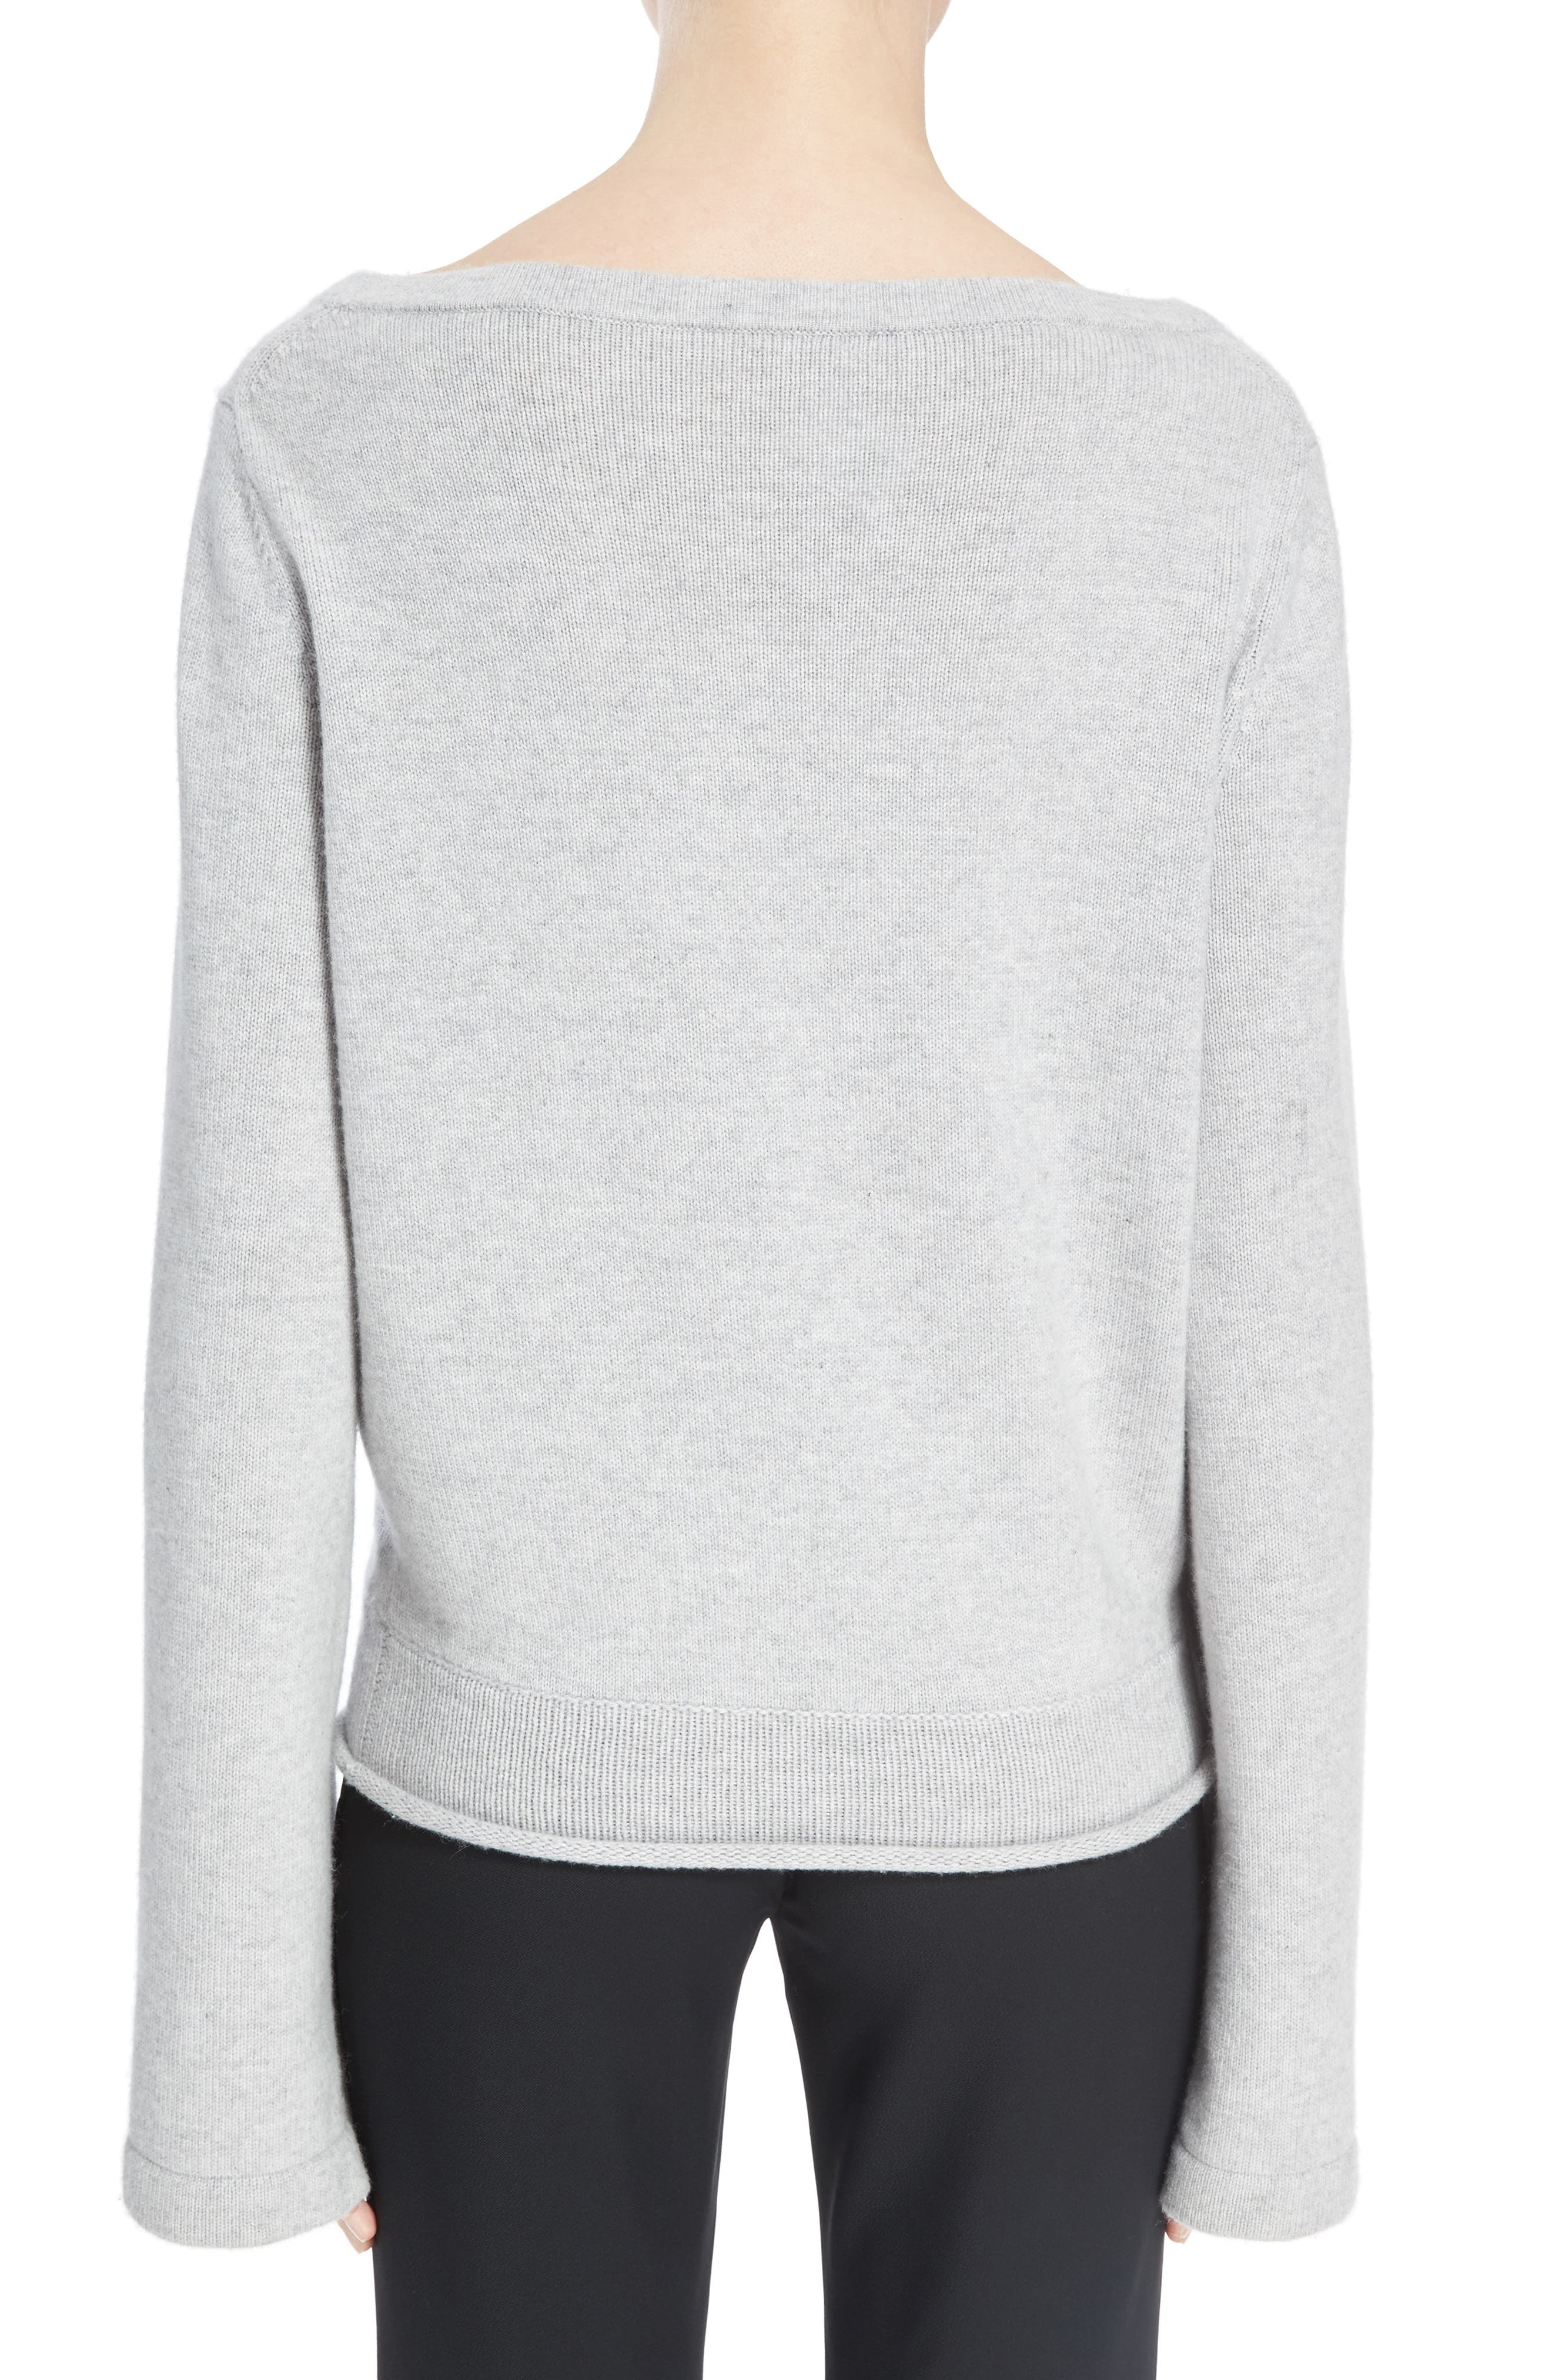 Iconic Cashmere Sweater,                             Alternate thumbnail 2, color,